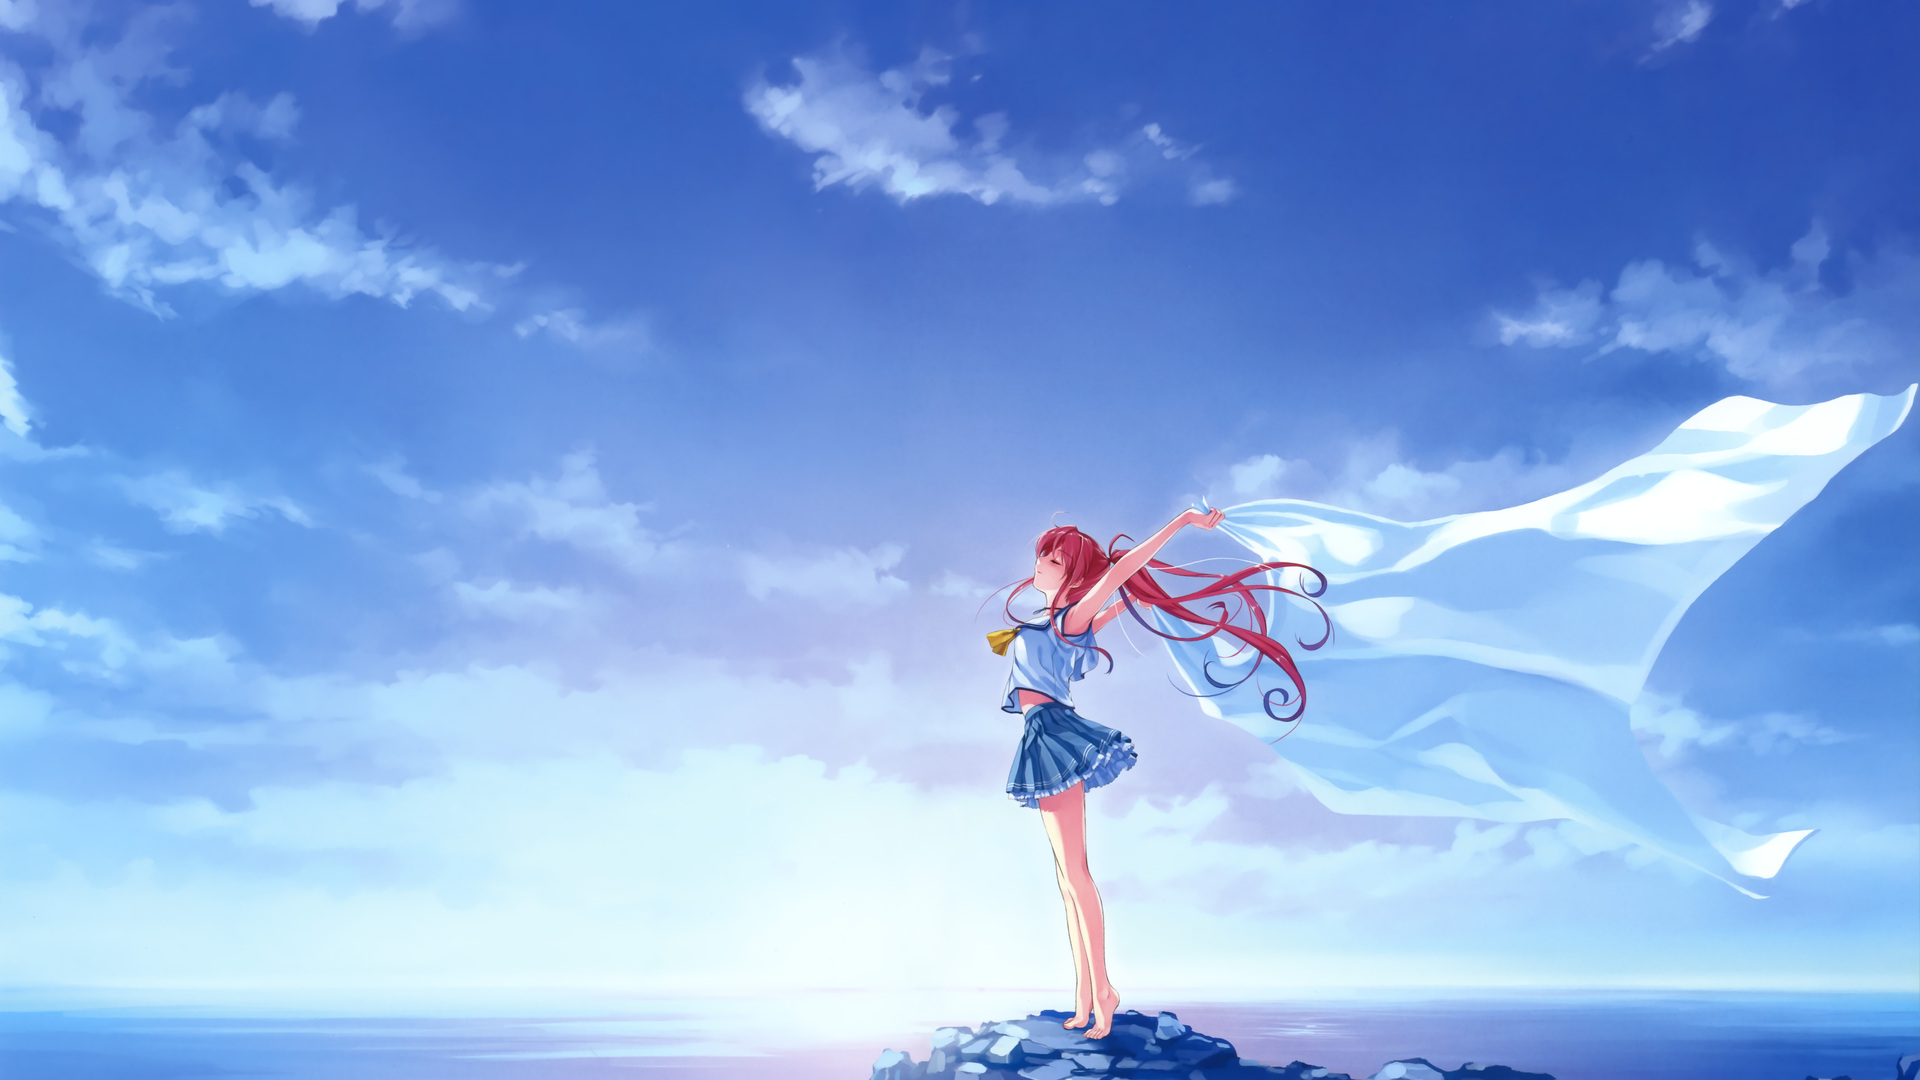 1920x1080 deep blue sky and pure white wings laptop full - Blue anime wallpaper ...